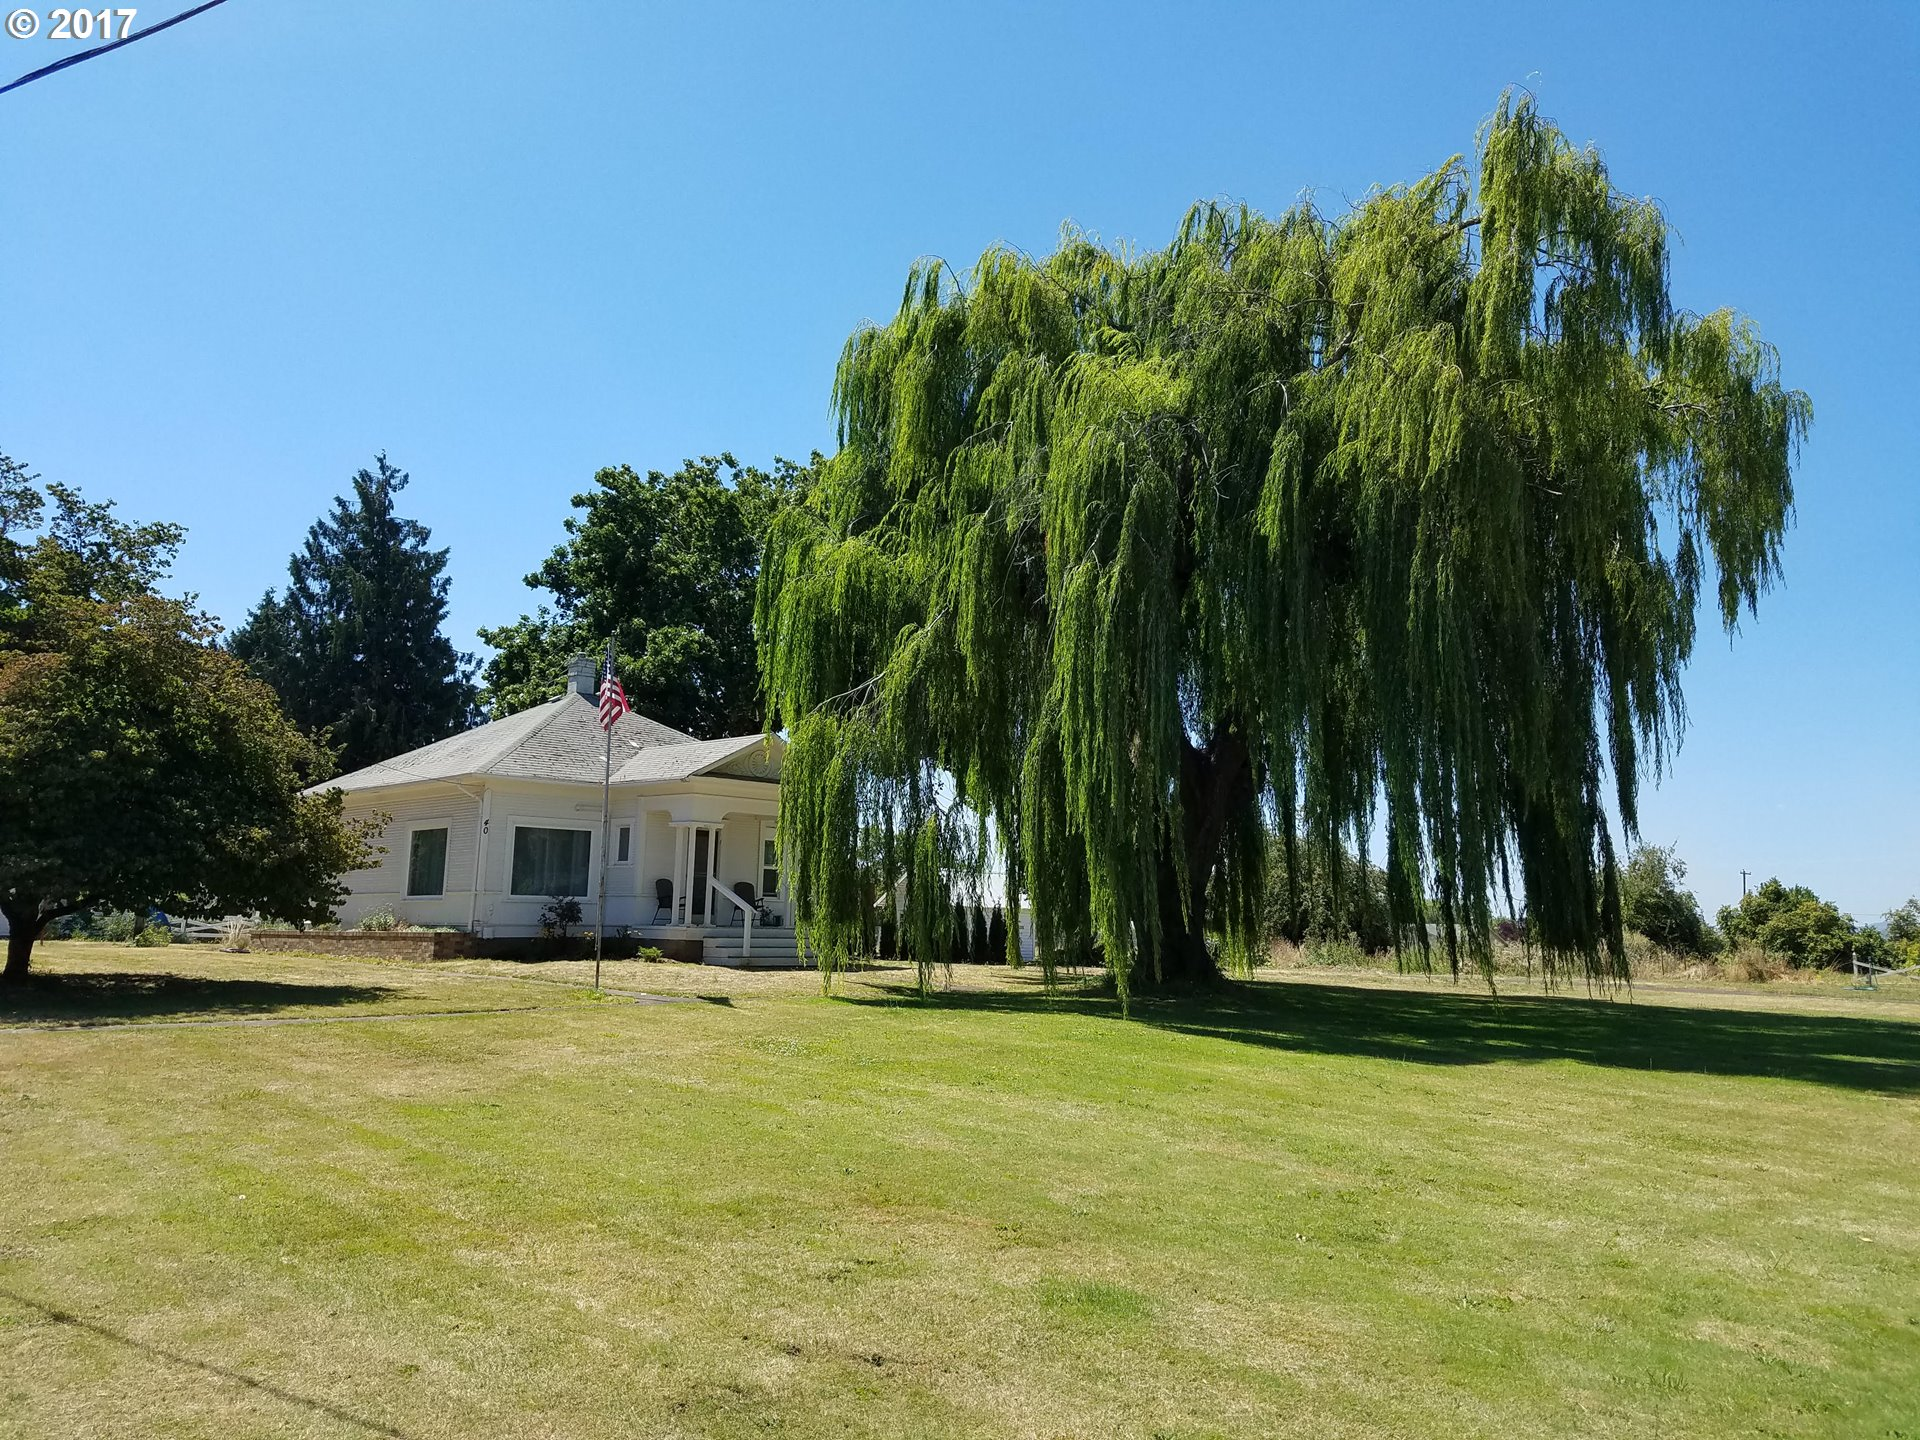 40 CHICK LN, Junction City, OR 97448